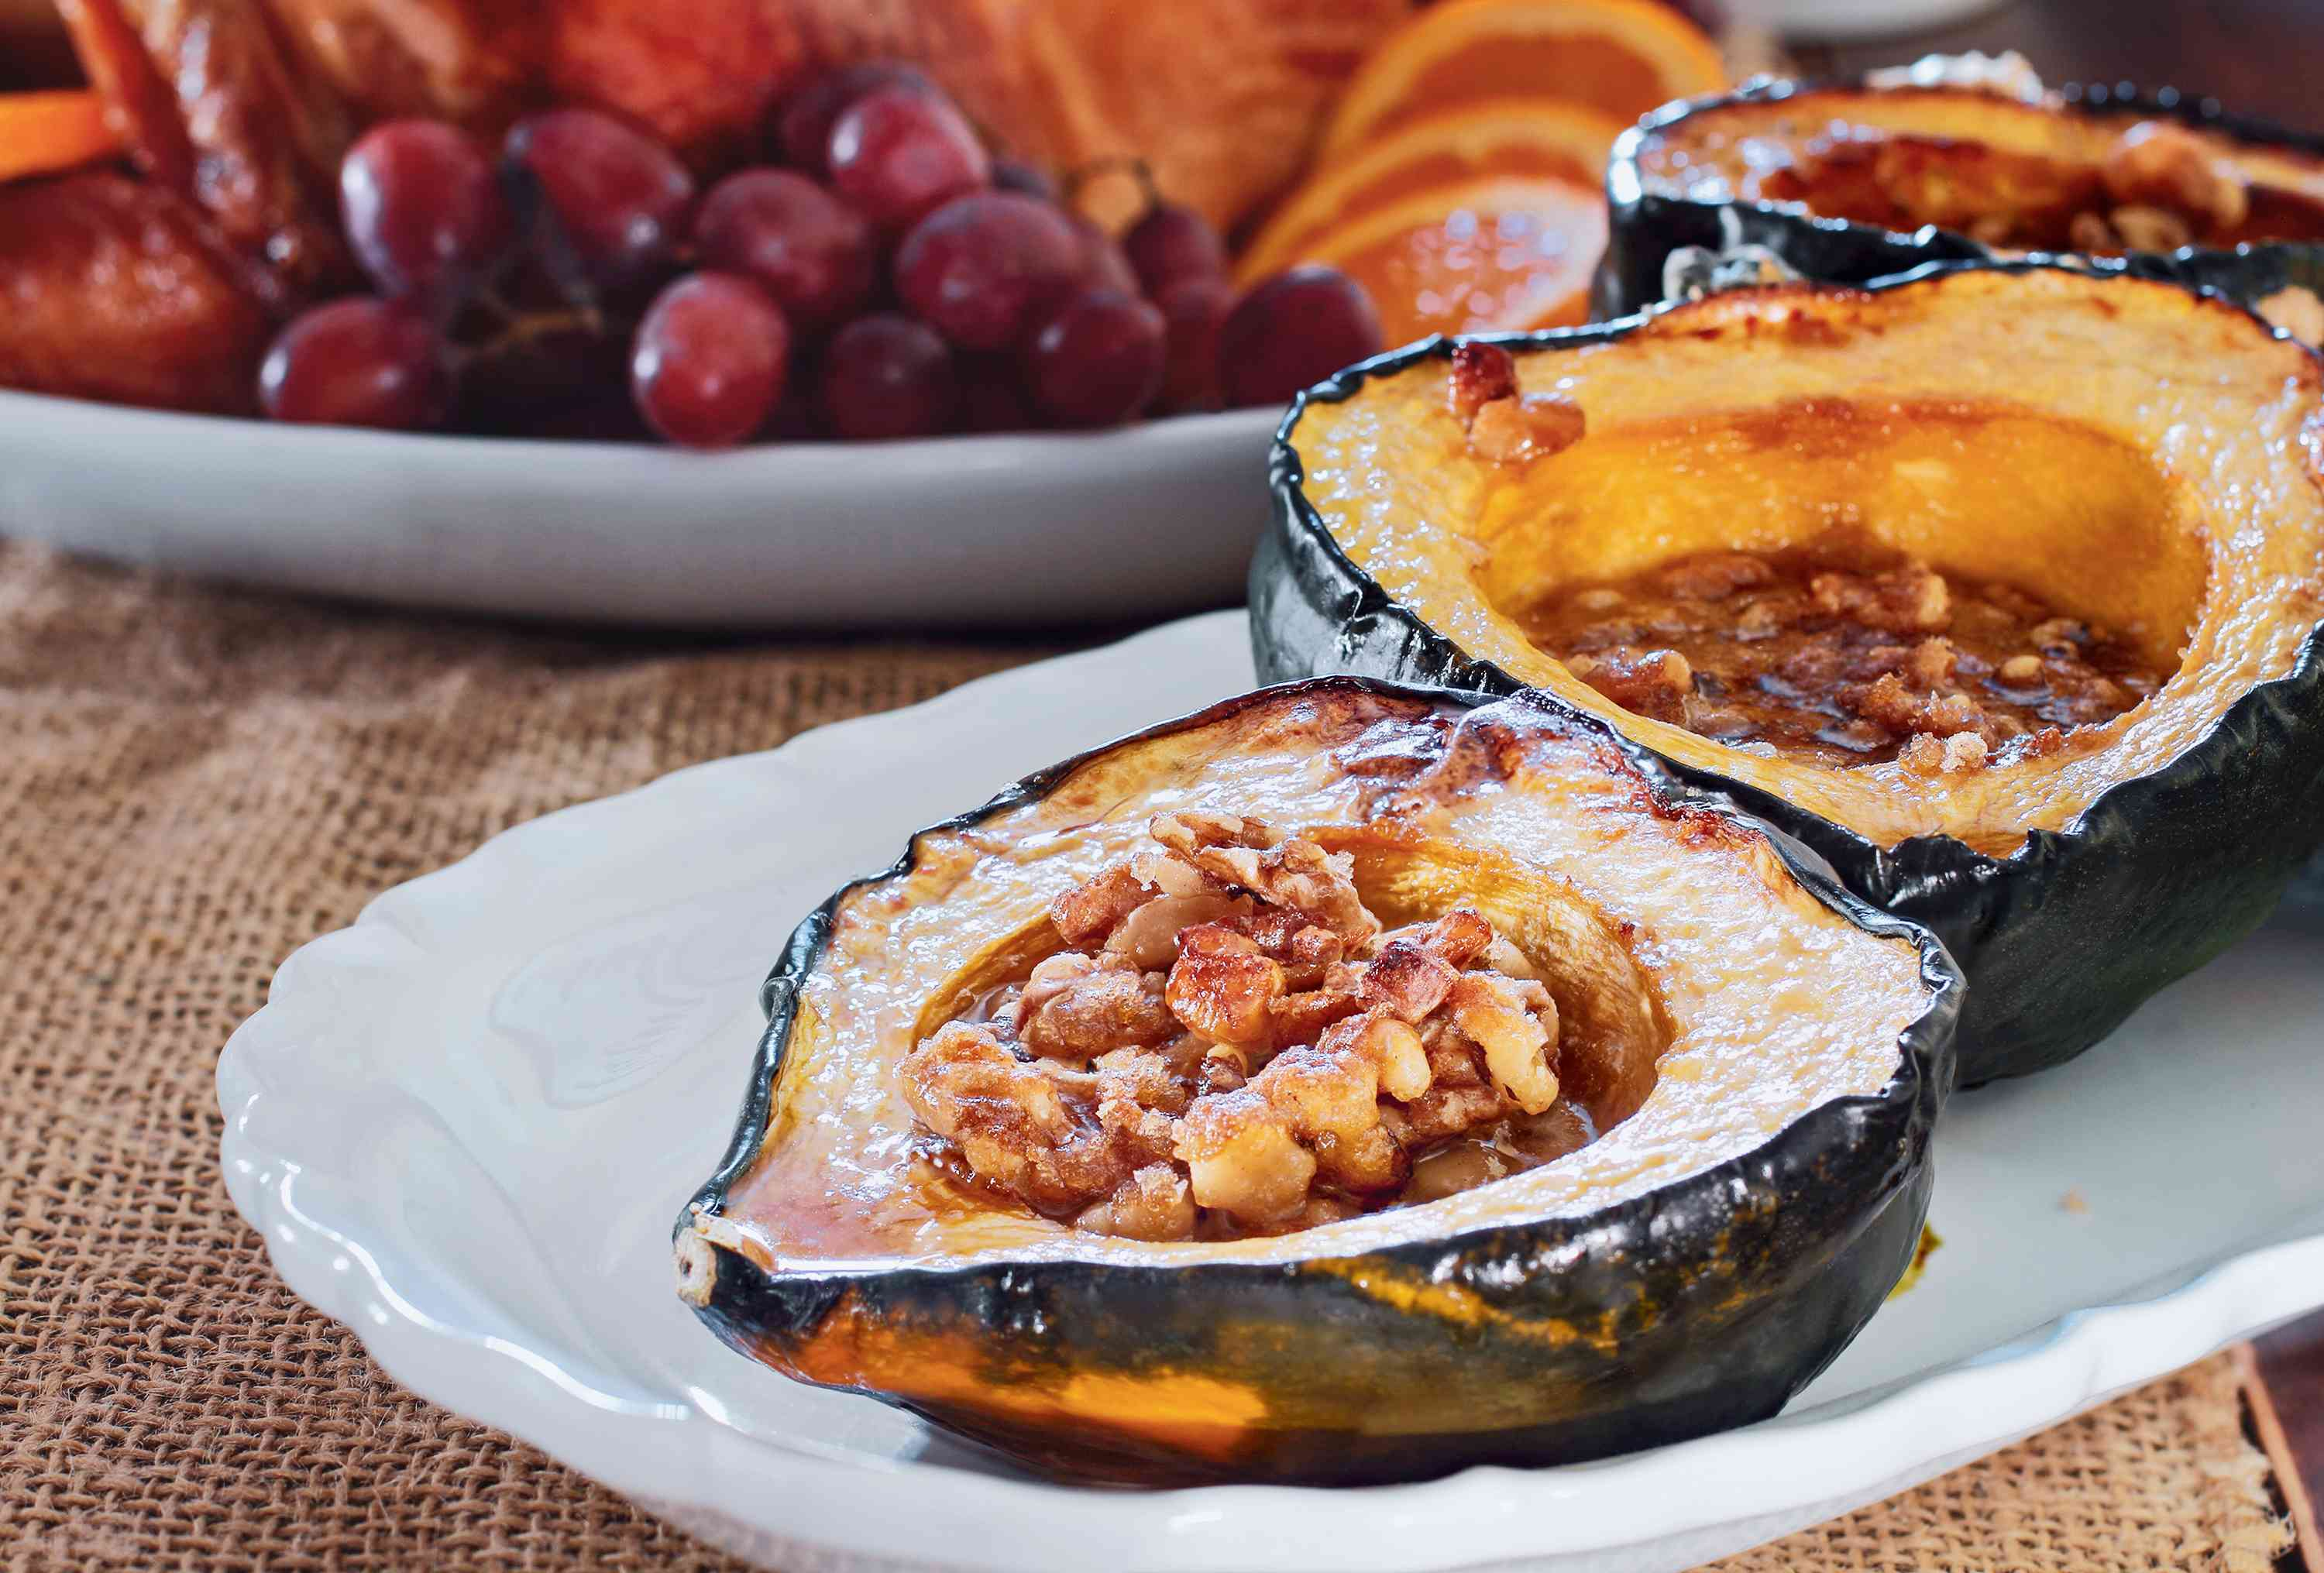 Sweet Grilled Acorn Squash With Walnuts